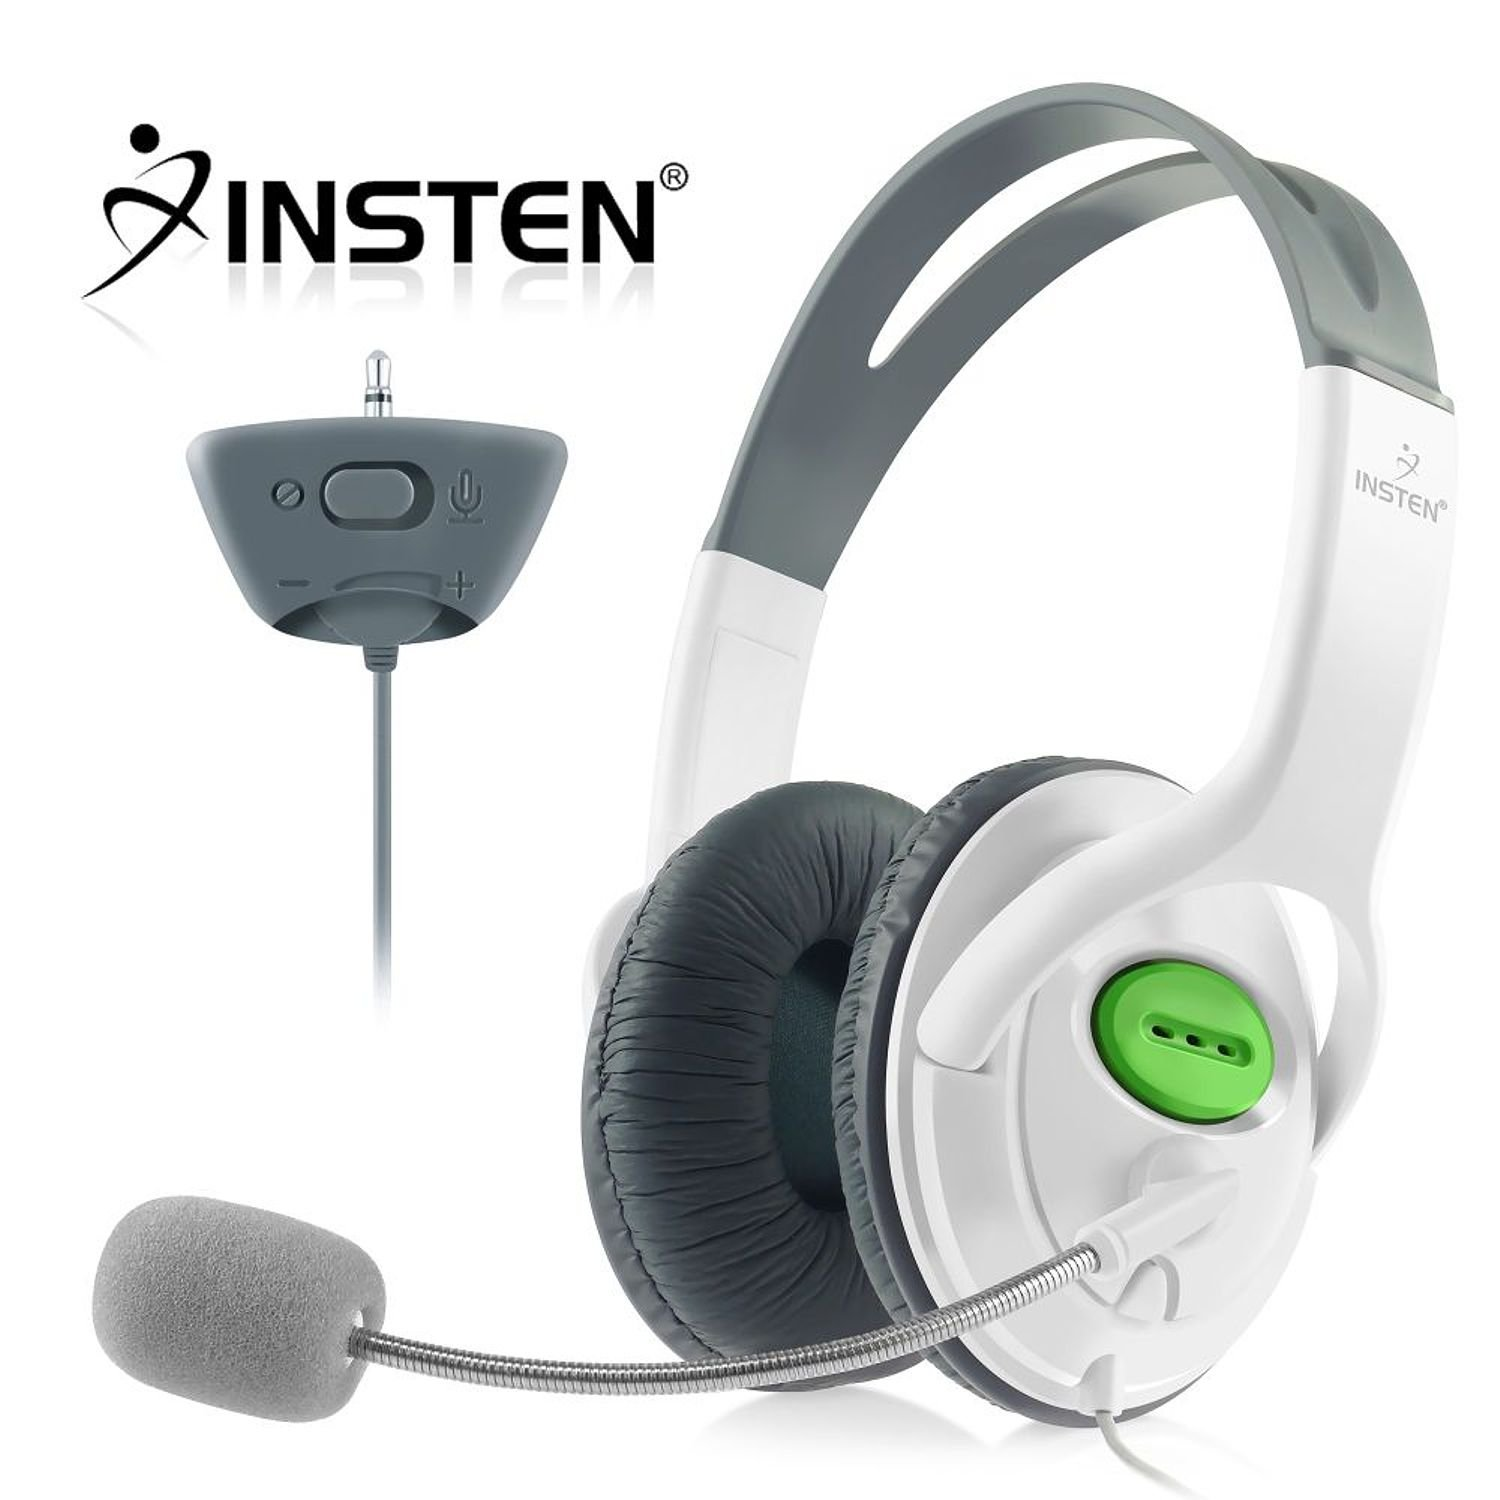 Insten Headset Headphone with Mic Compatible with Xbox 360 Wireless Controller, White by INSTEN